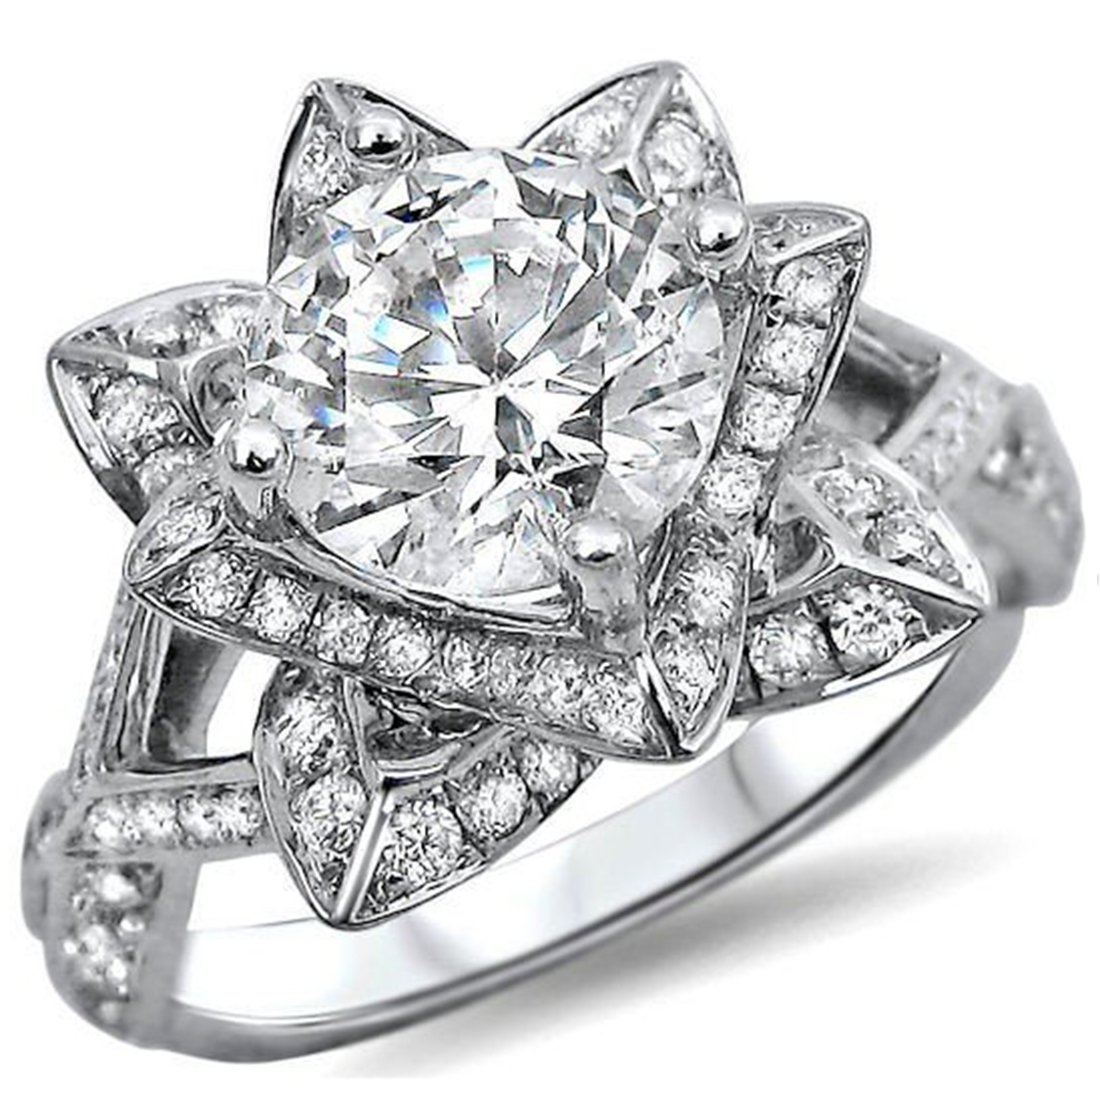 Smjewels 1.50 Ct Round Cut Lotus Flower Sim.Diamond Engagement Ring In 14K White Gold Plated